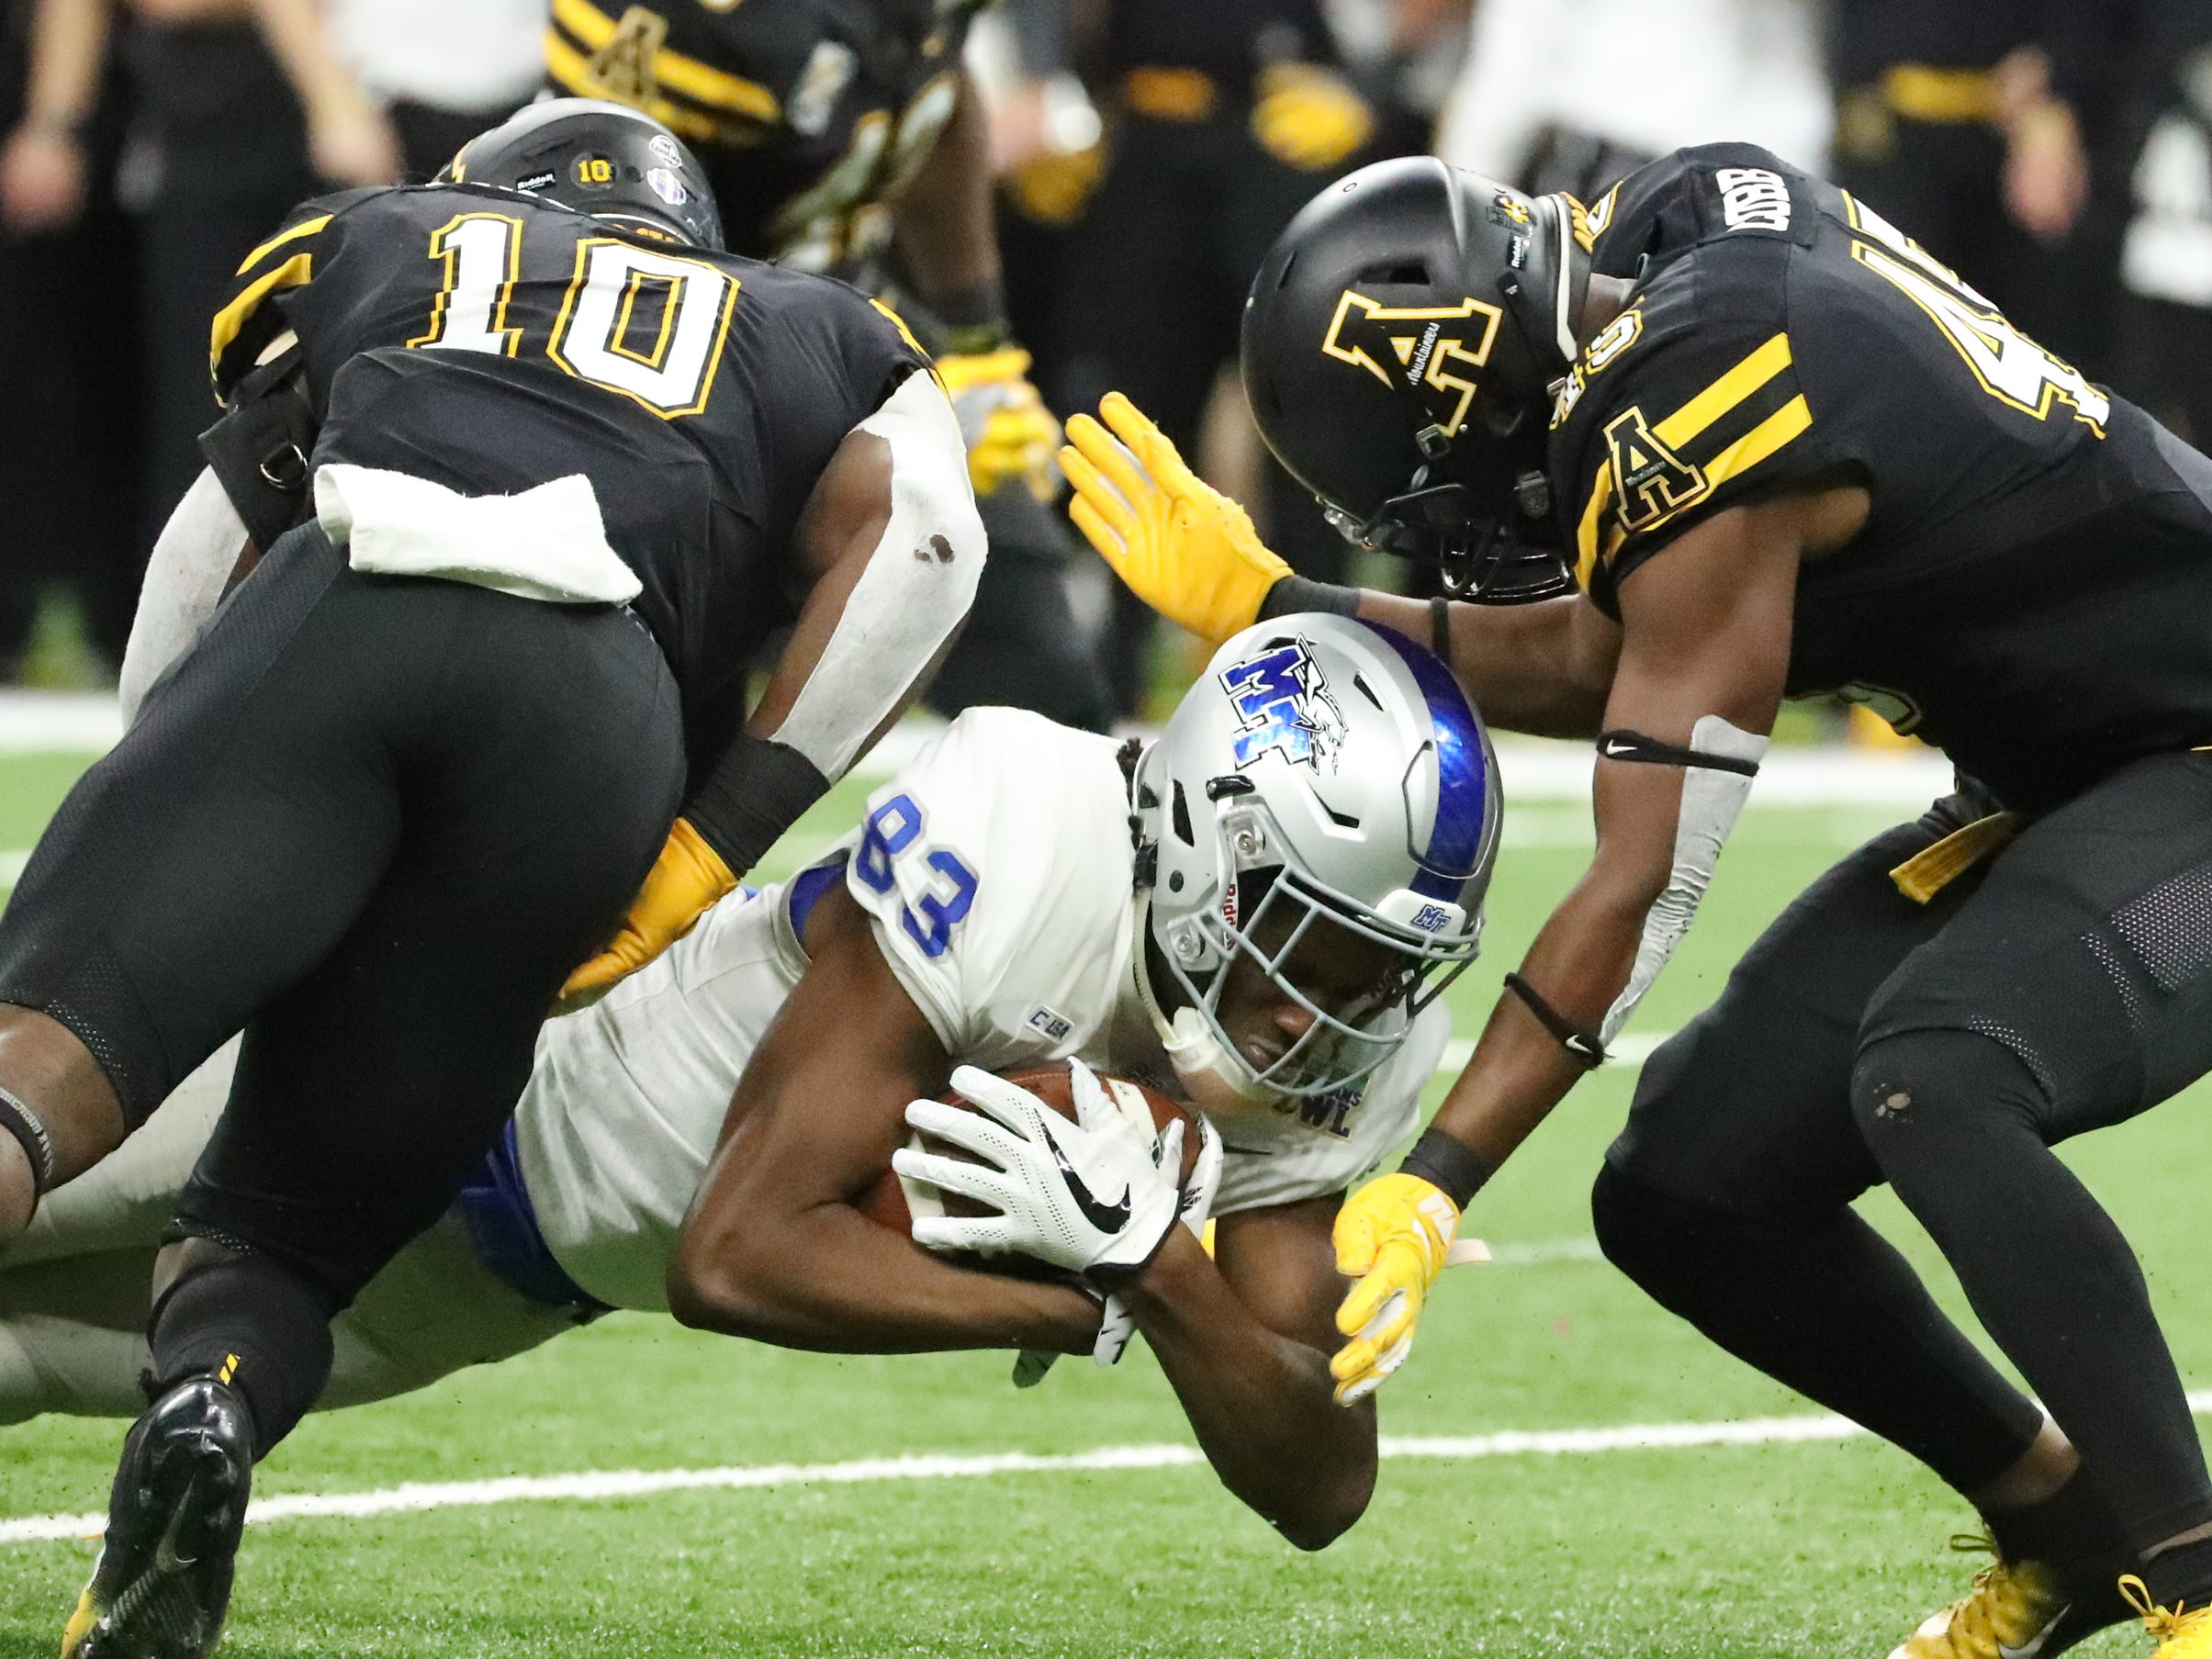 Middle Tennessee Blue Raiders wide receiver Jimmy Marshall (83) dives for yardage as Appalachian State Mountaineers linebacker Tim Frizzell (10) and Appalachian State Mountaineers linebacker Trey Cobb (45) move in for the tackle on Saturday, Dec. 15, 2018, during the New Orleans Bowl.